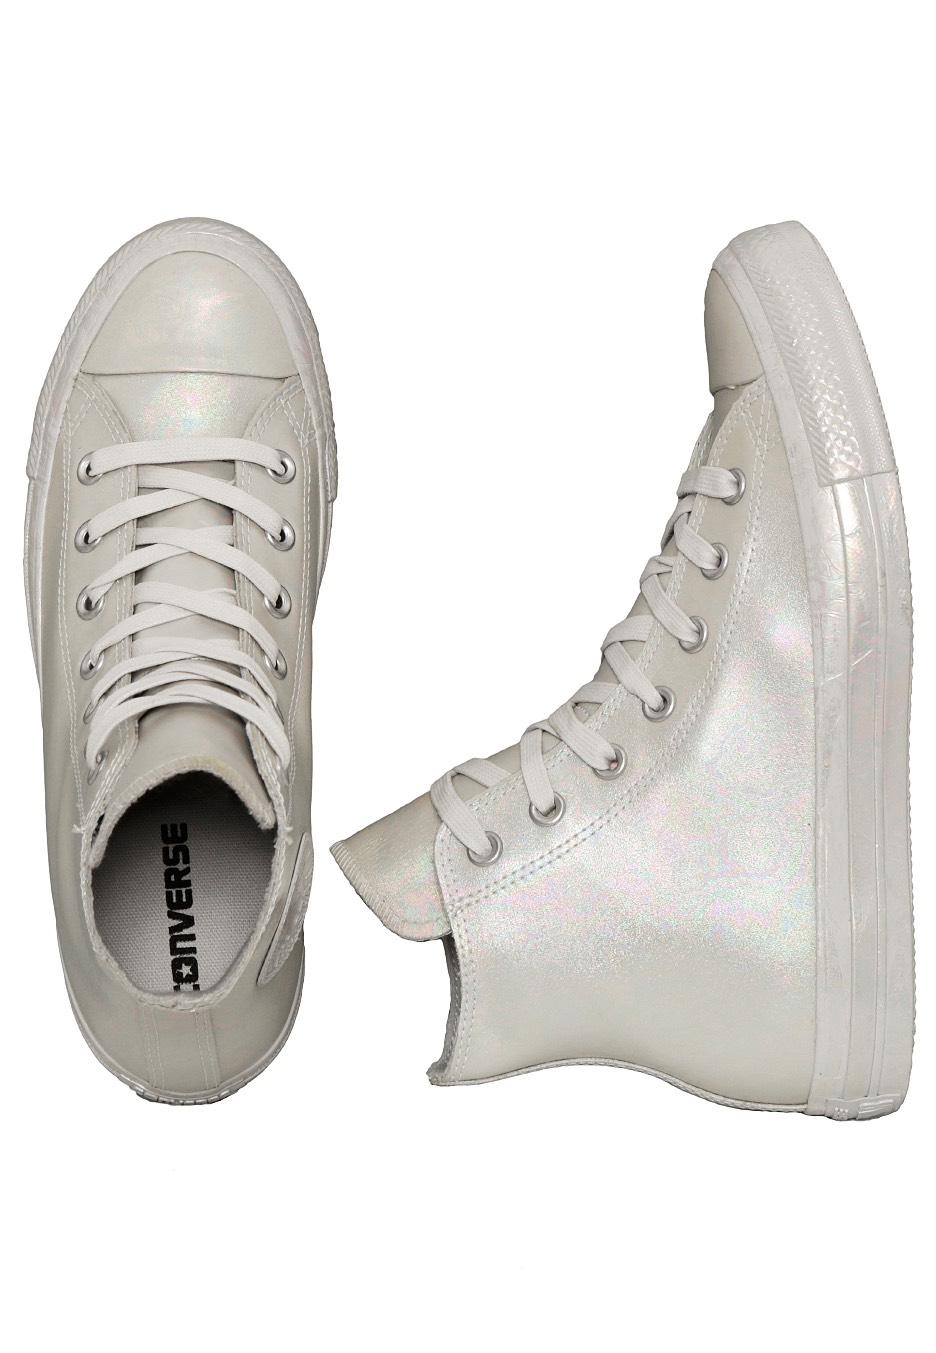 Converse - Chuck Taylor All Star Hi Rubber Oil Slick Mouse Mouse Mouse -  Girl Shoes - Impericon.com UK 2dc550639